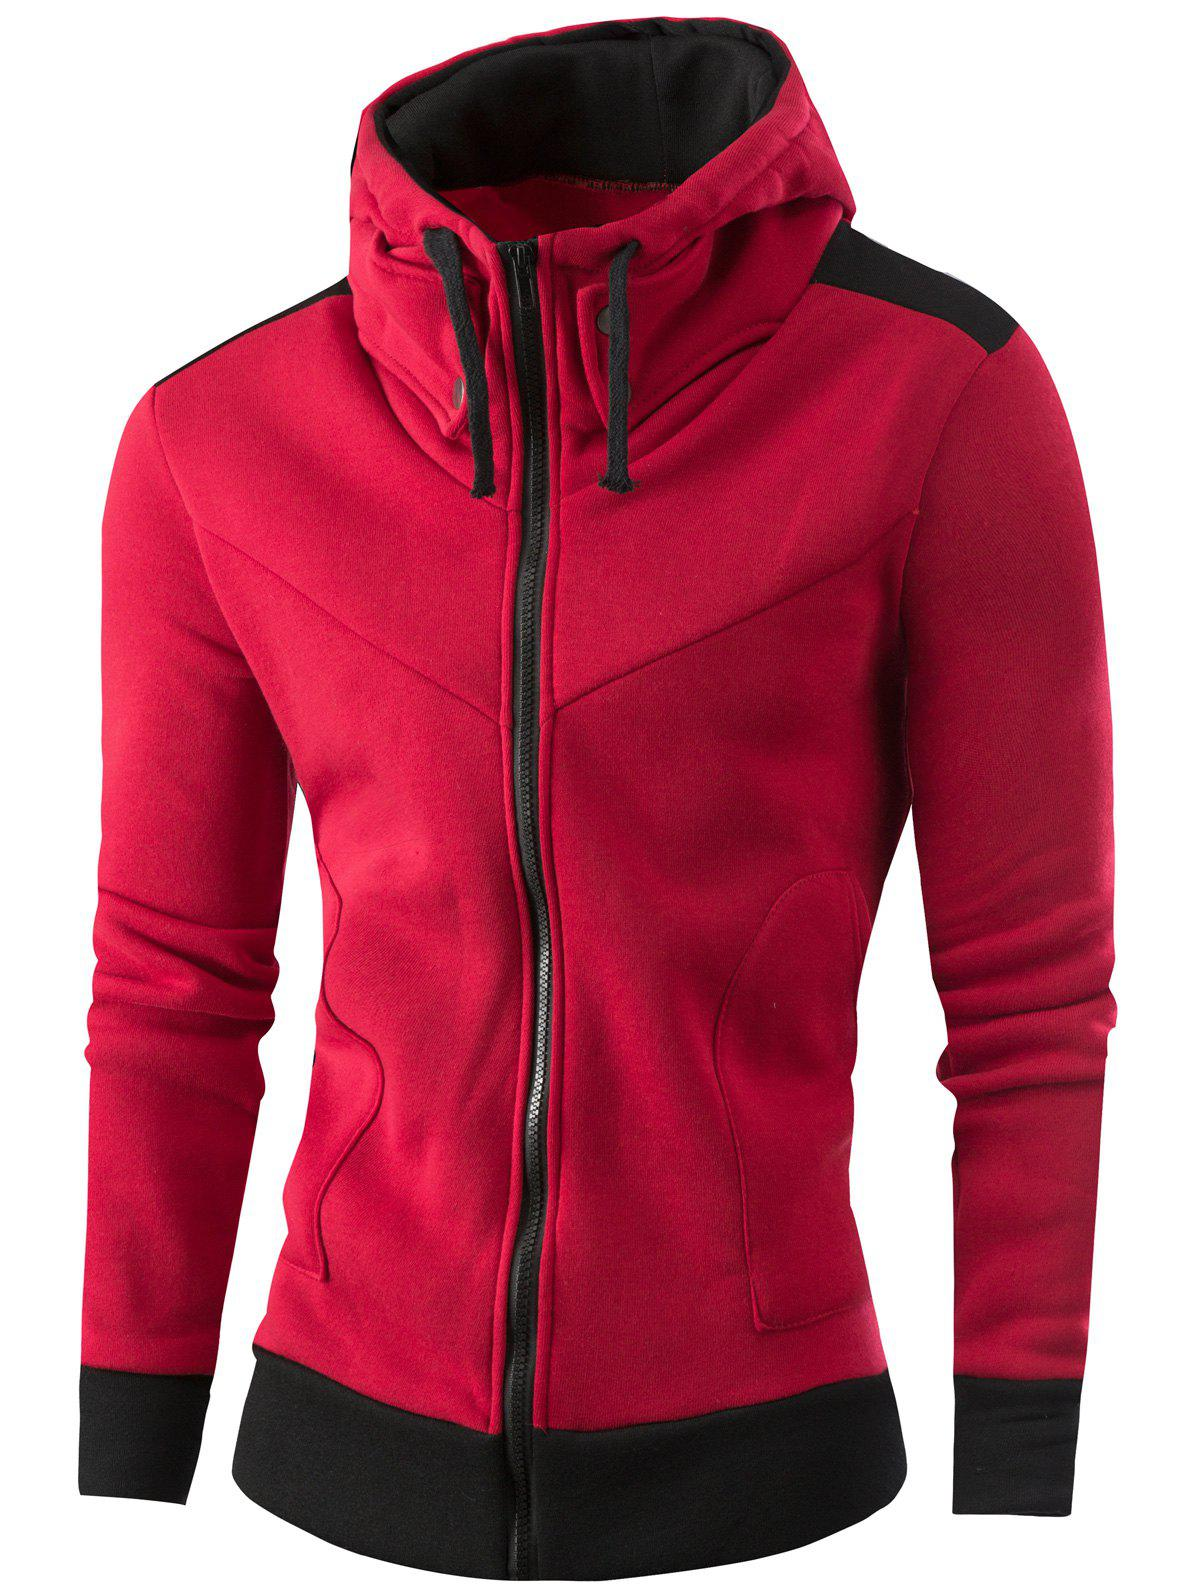 Full Zipper Deux Tons Sweat à Capuche - Vin rouge L